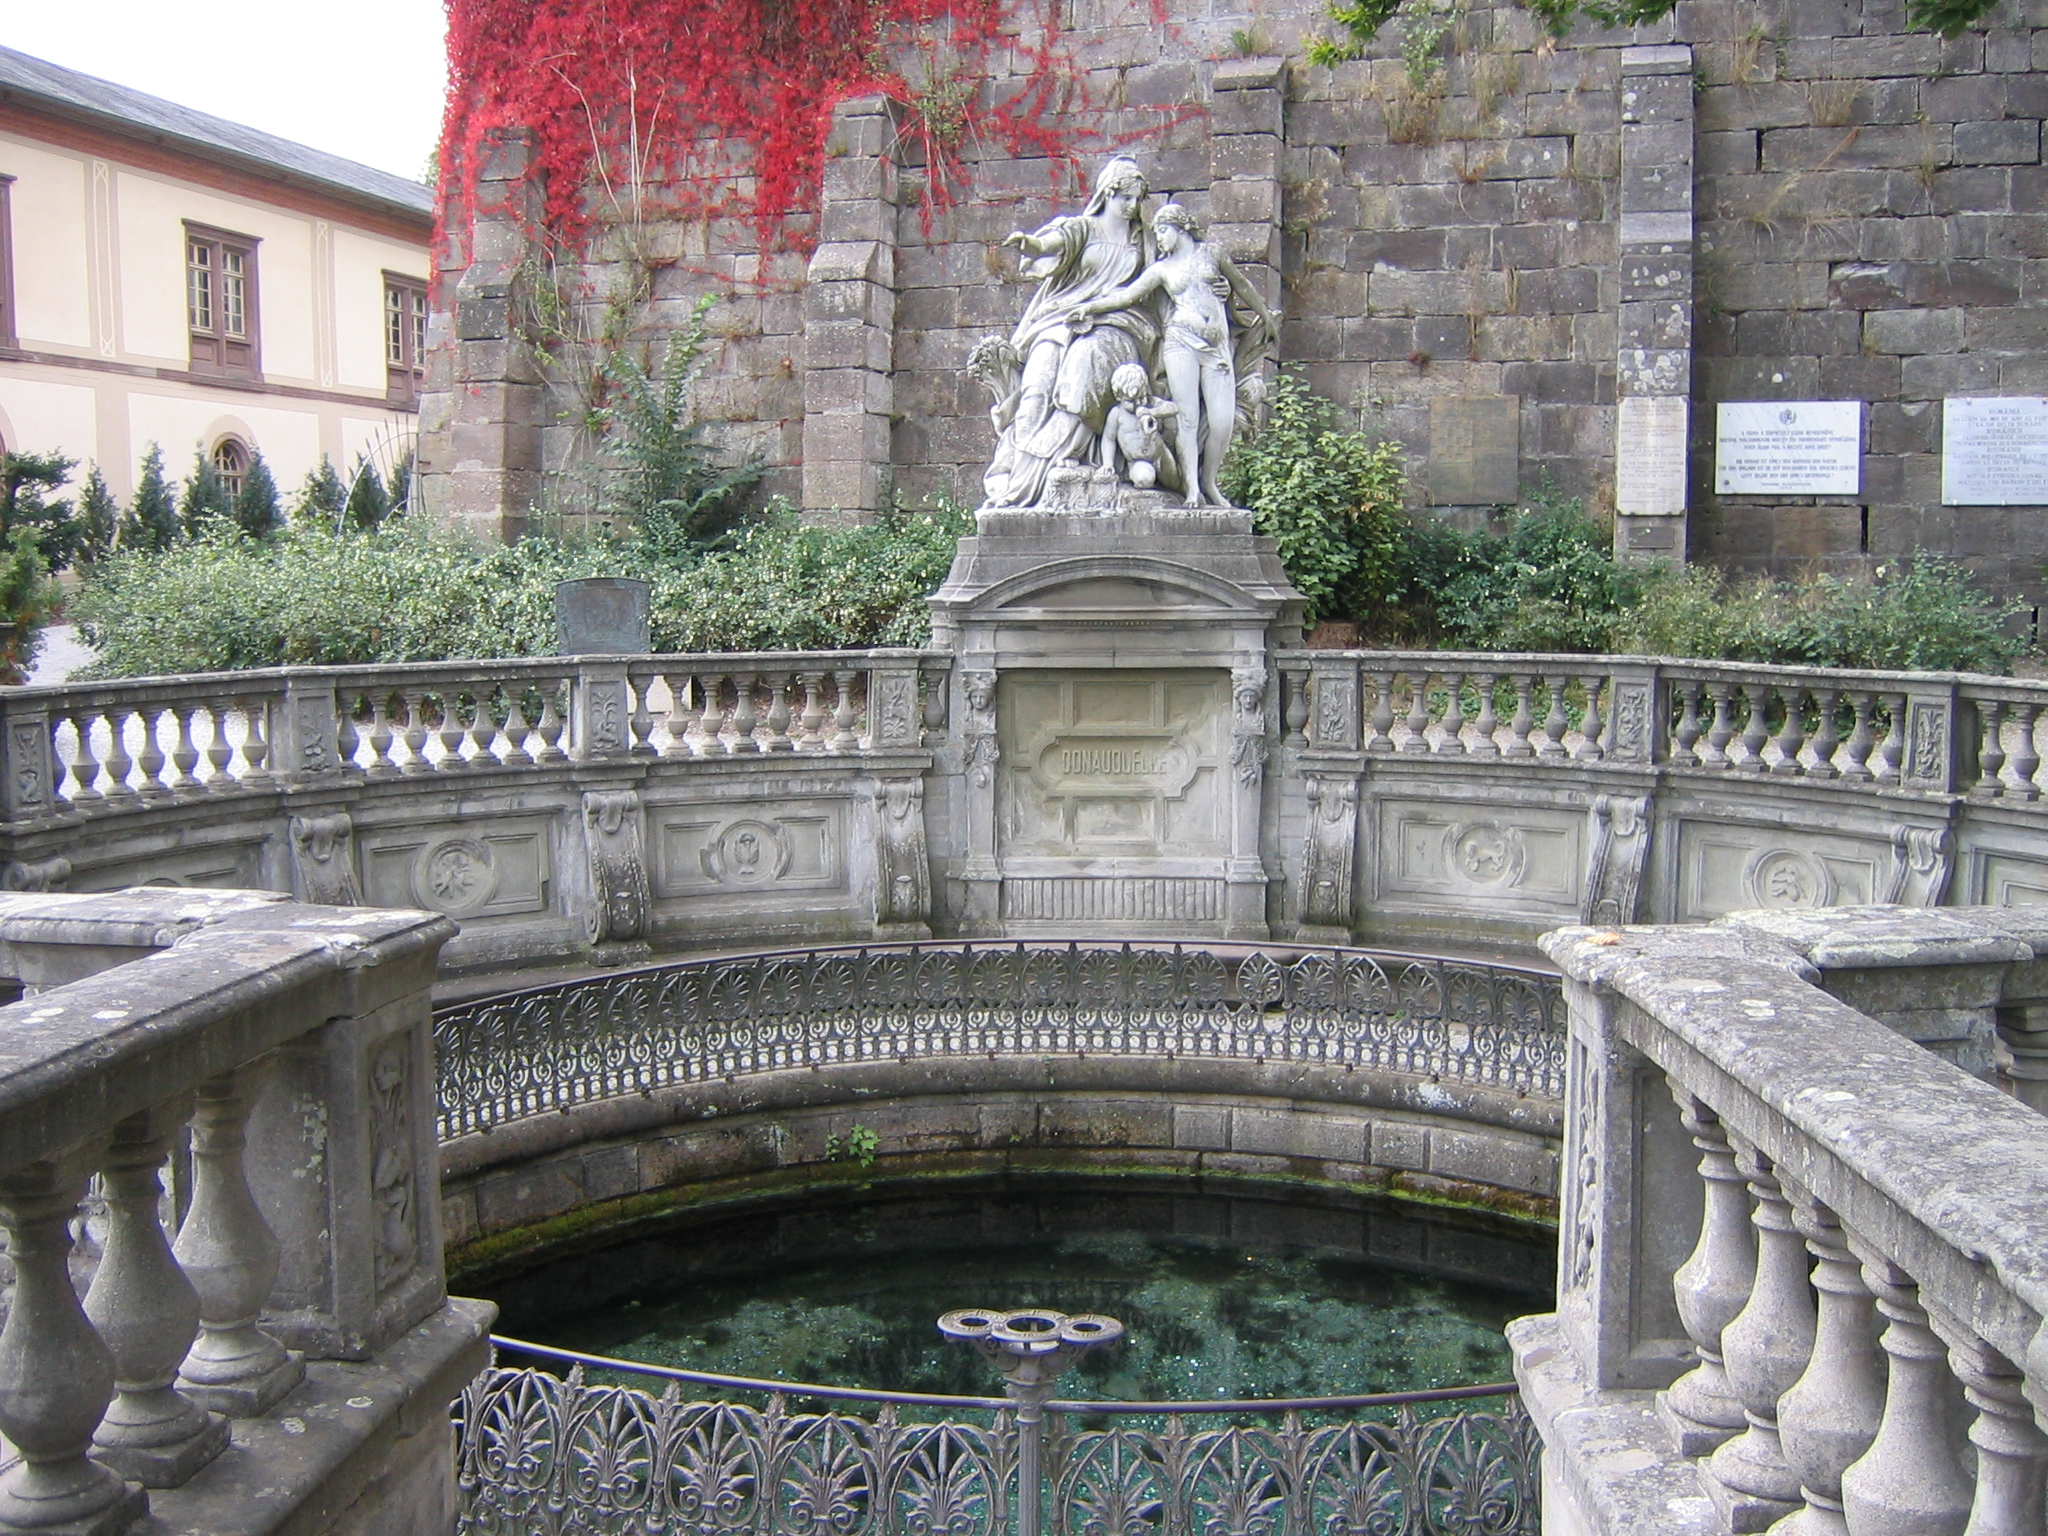 Source: https://upload.wikimedia.org/wikipedia/commons/a/a4/Donaueschingen_Donauquelle_4386.jpg